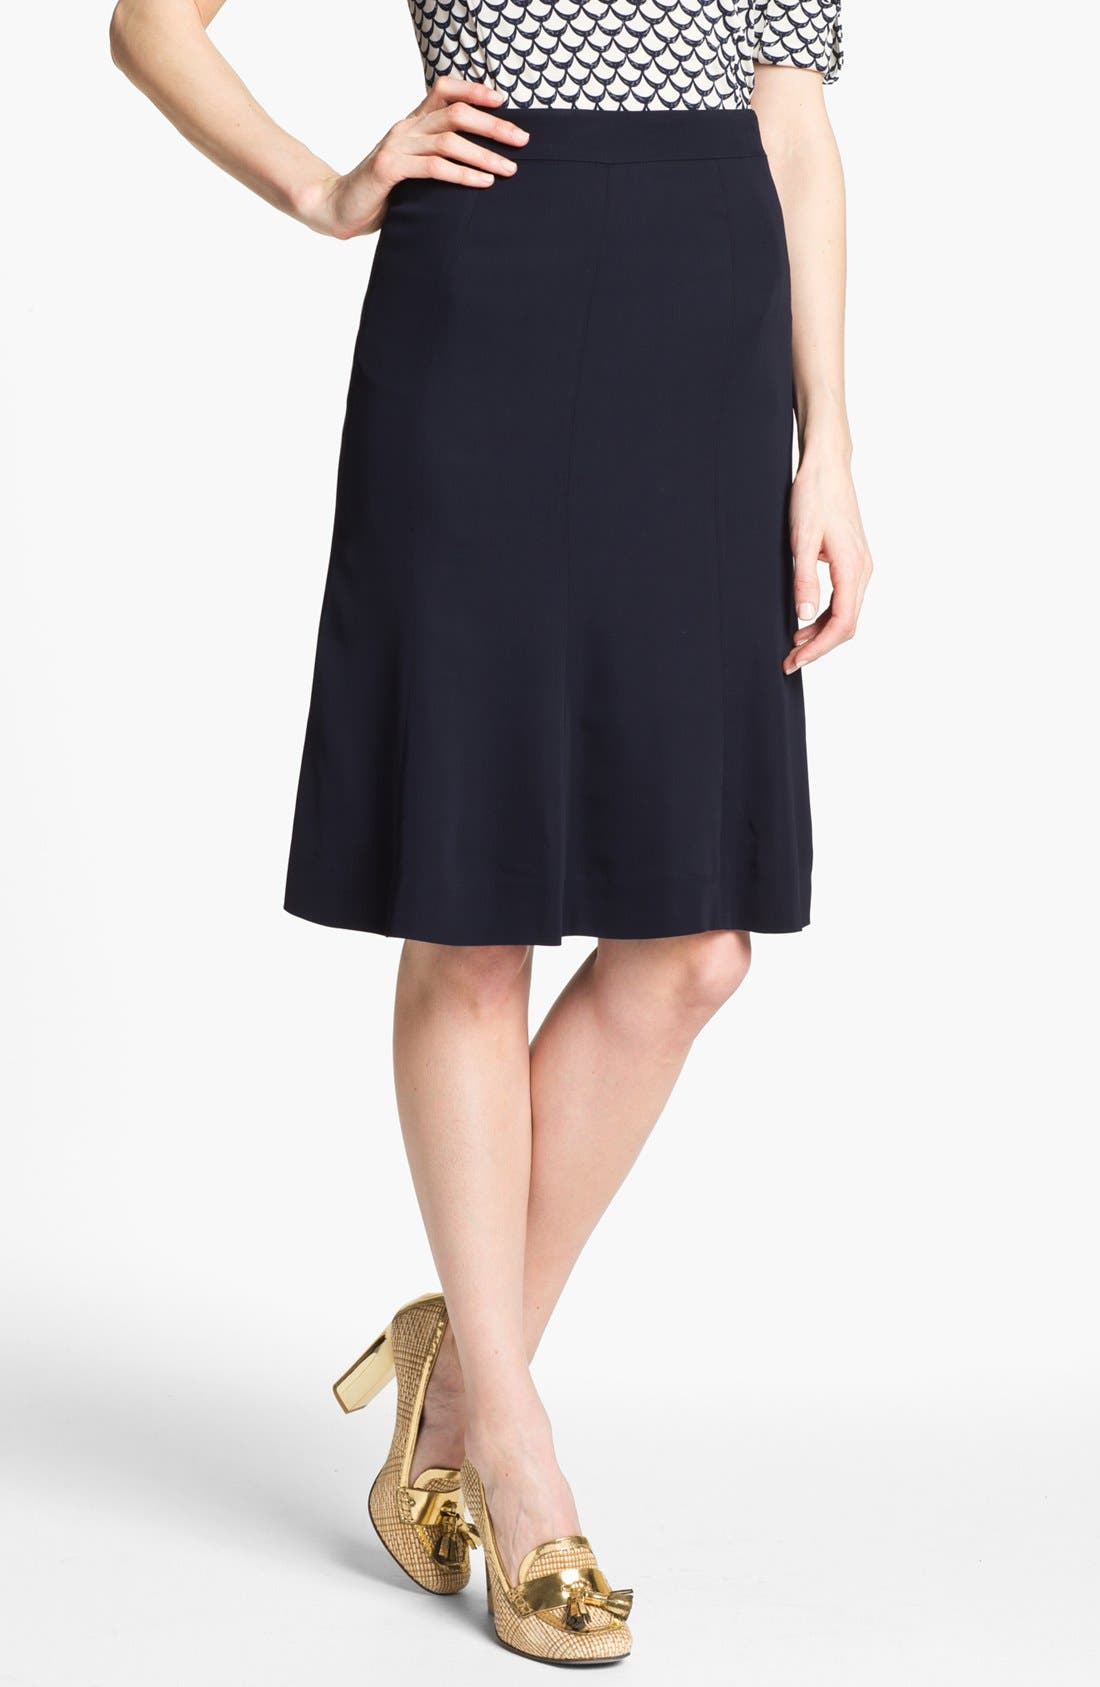 Main Image - Tory Burch 'Piera' Skirt